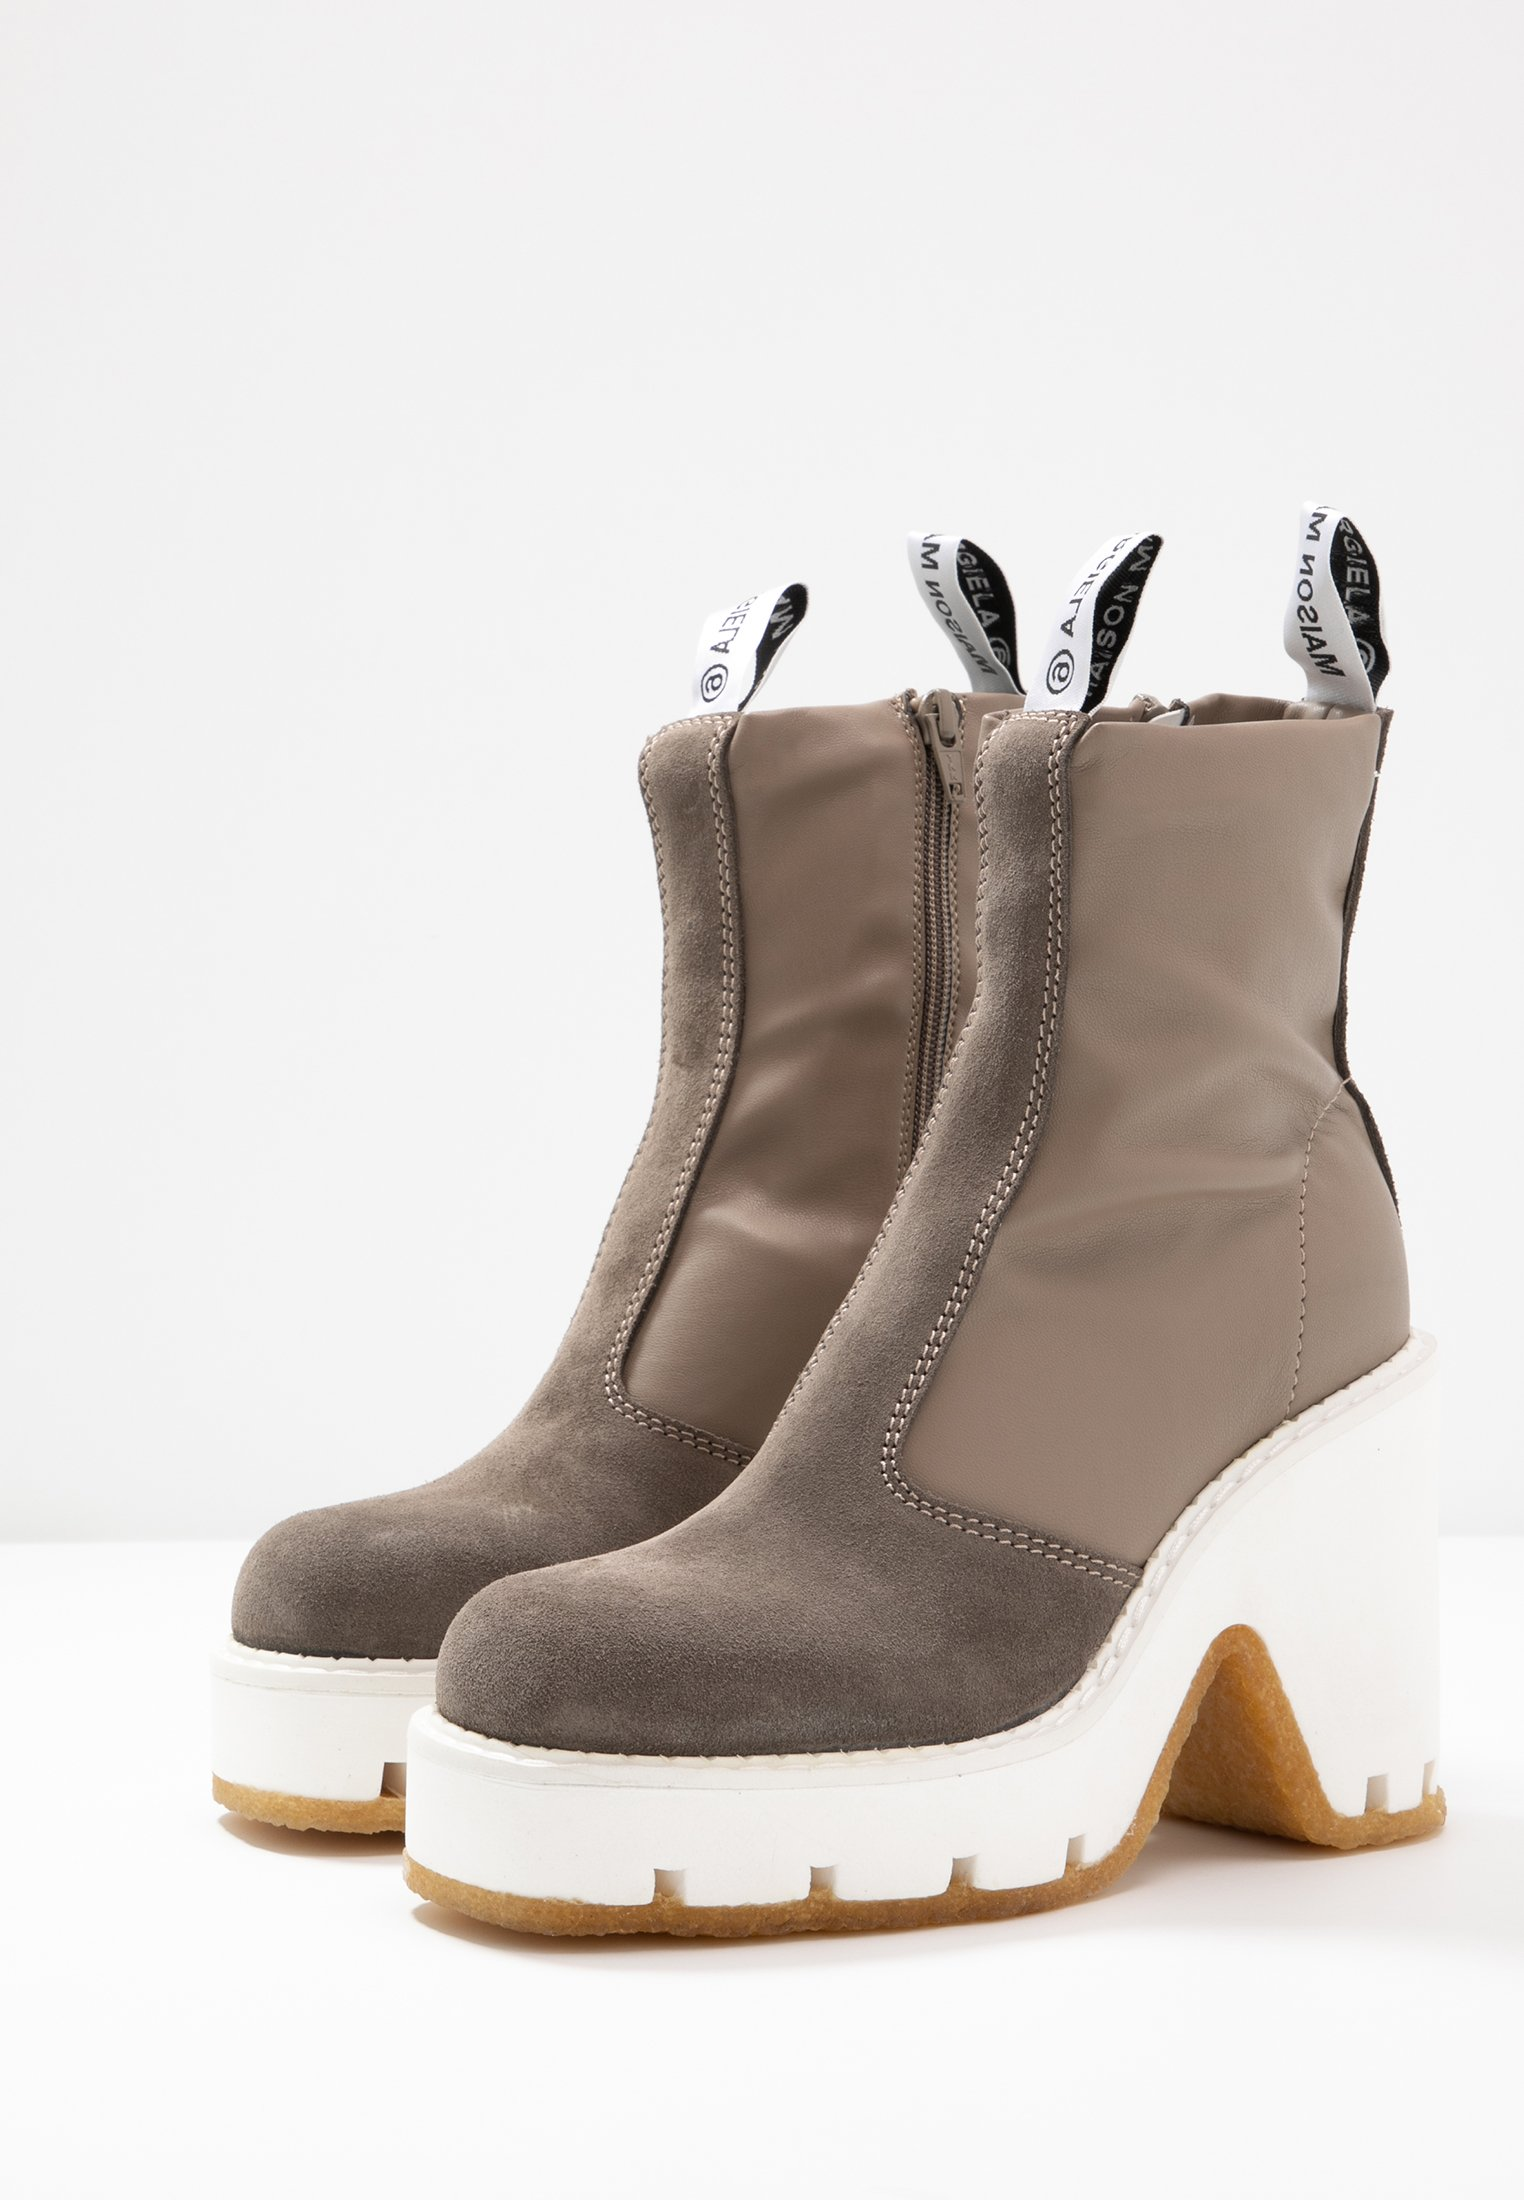 MM6 Maison Margiela Bottines à talons hauts dark olive/otter